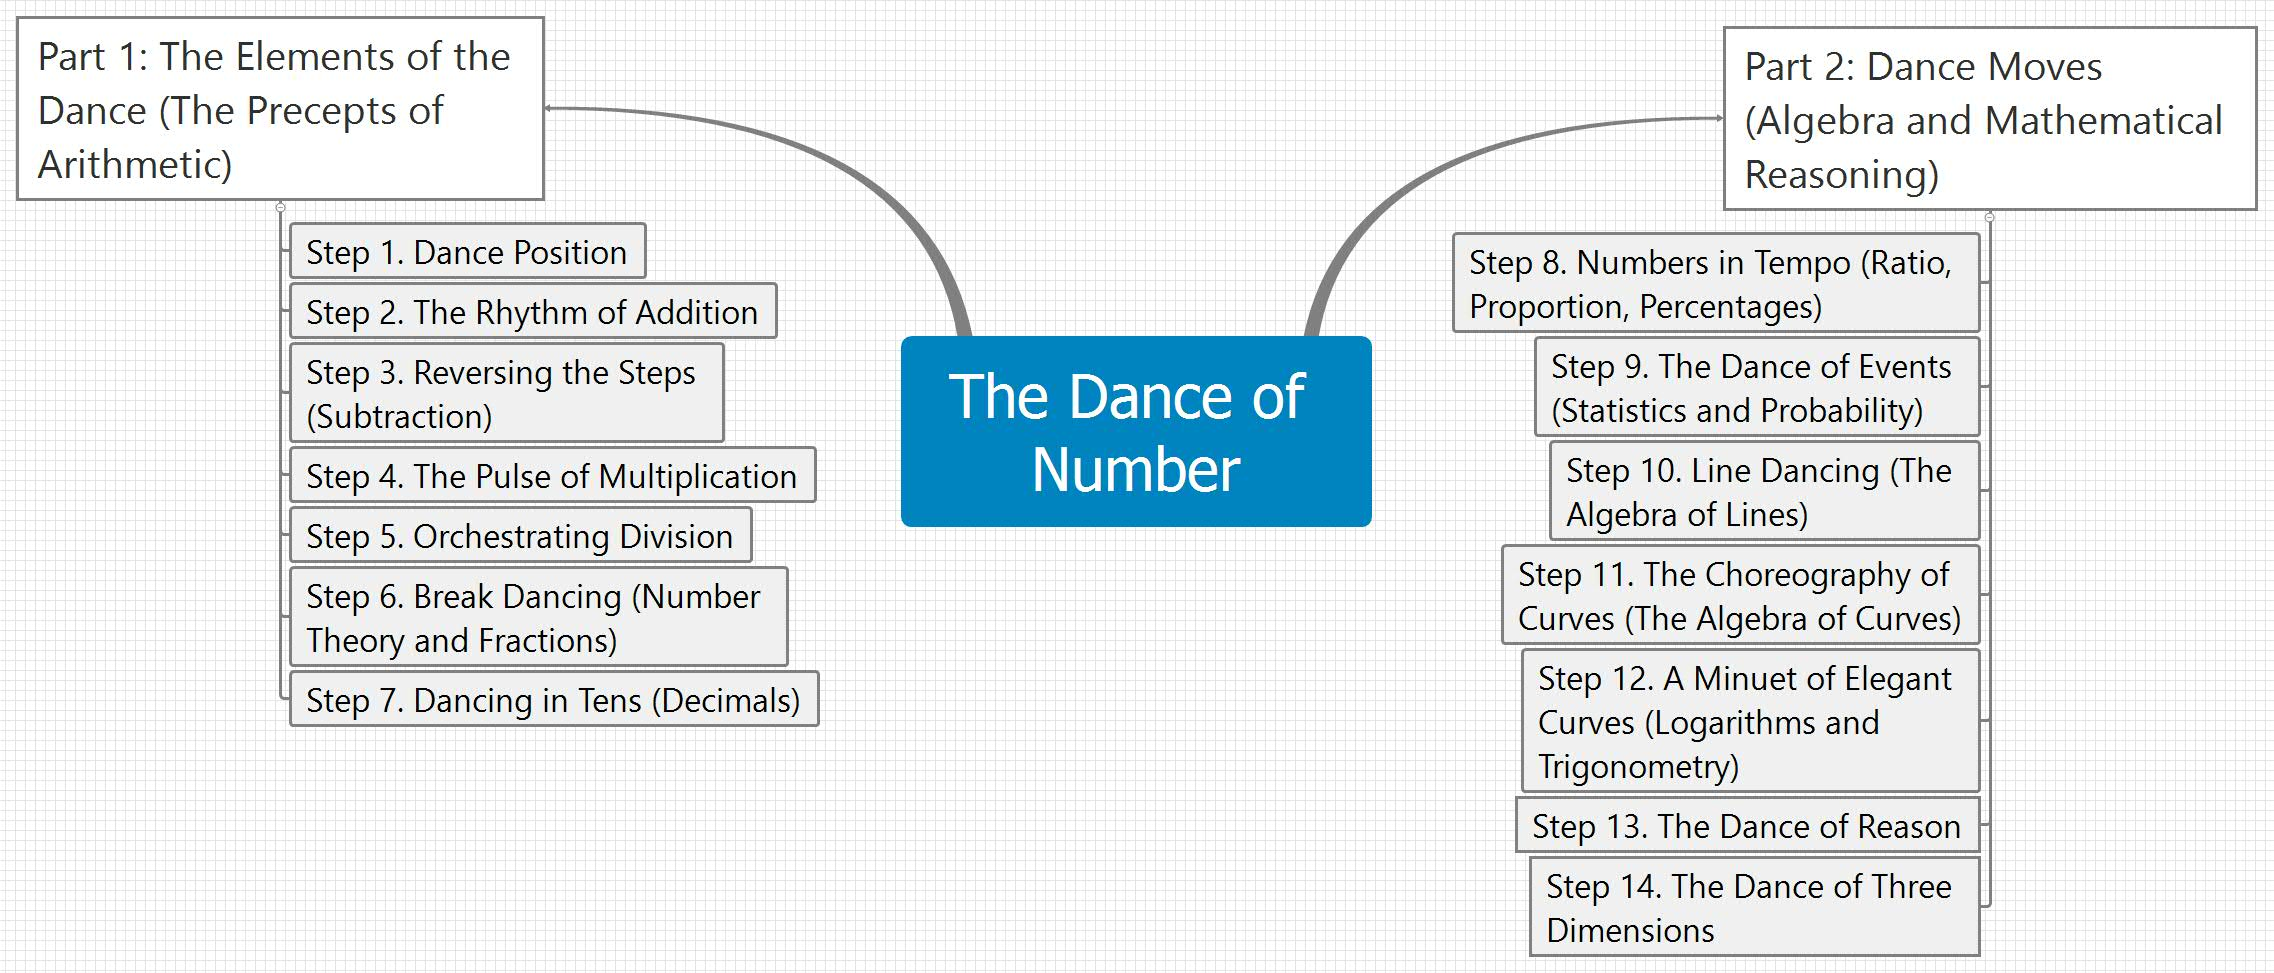 The Dance of Number